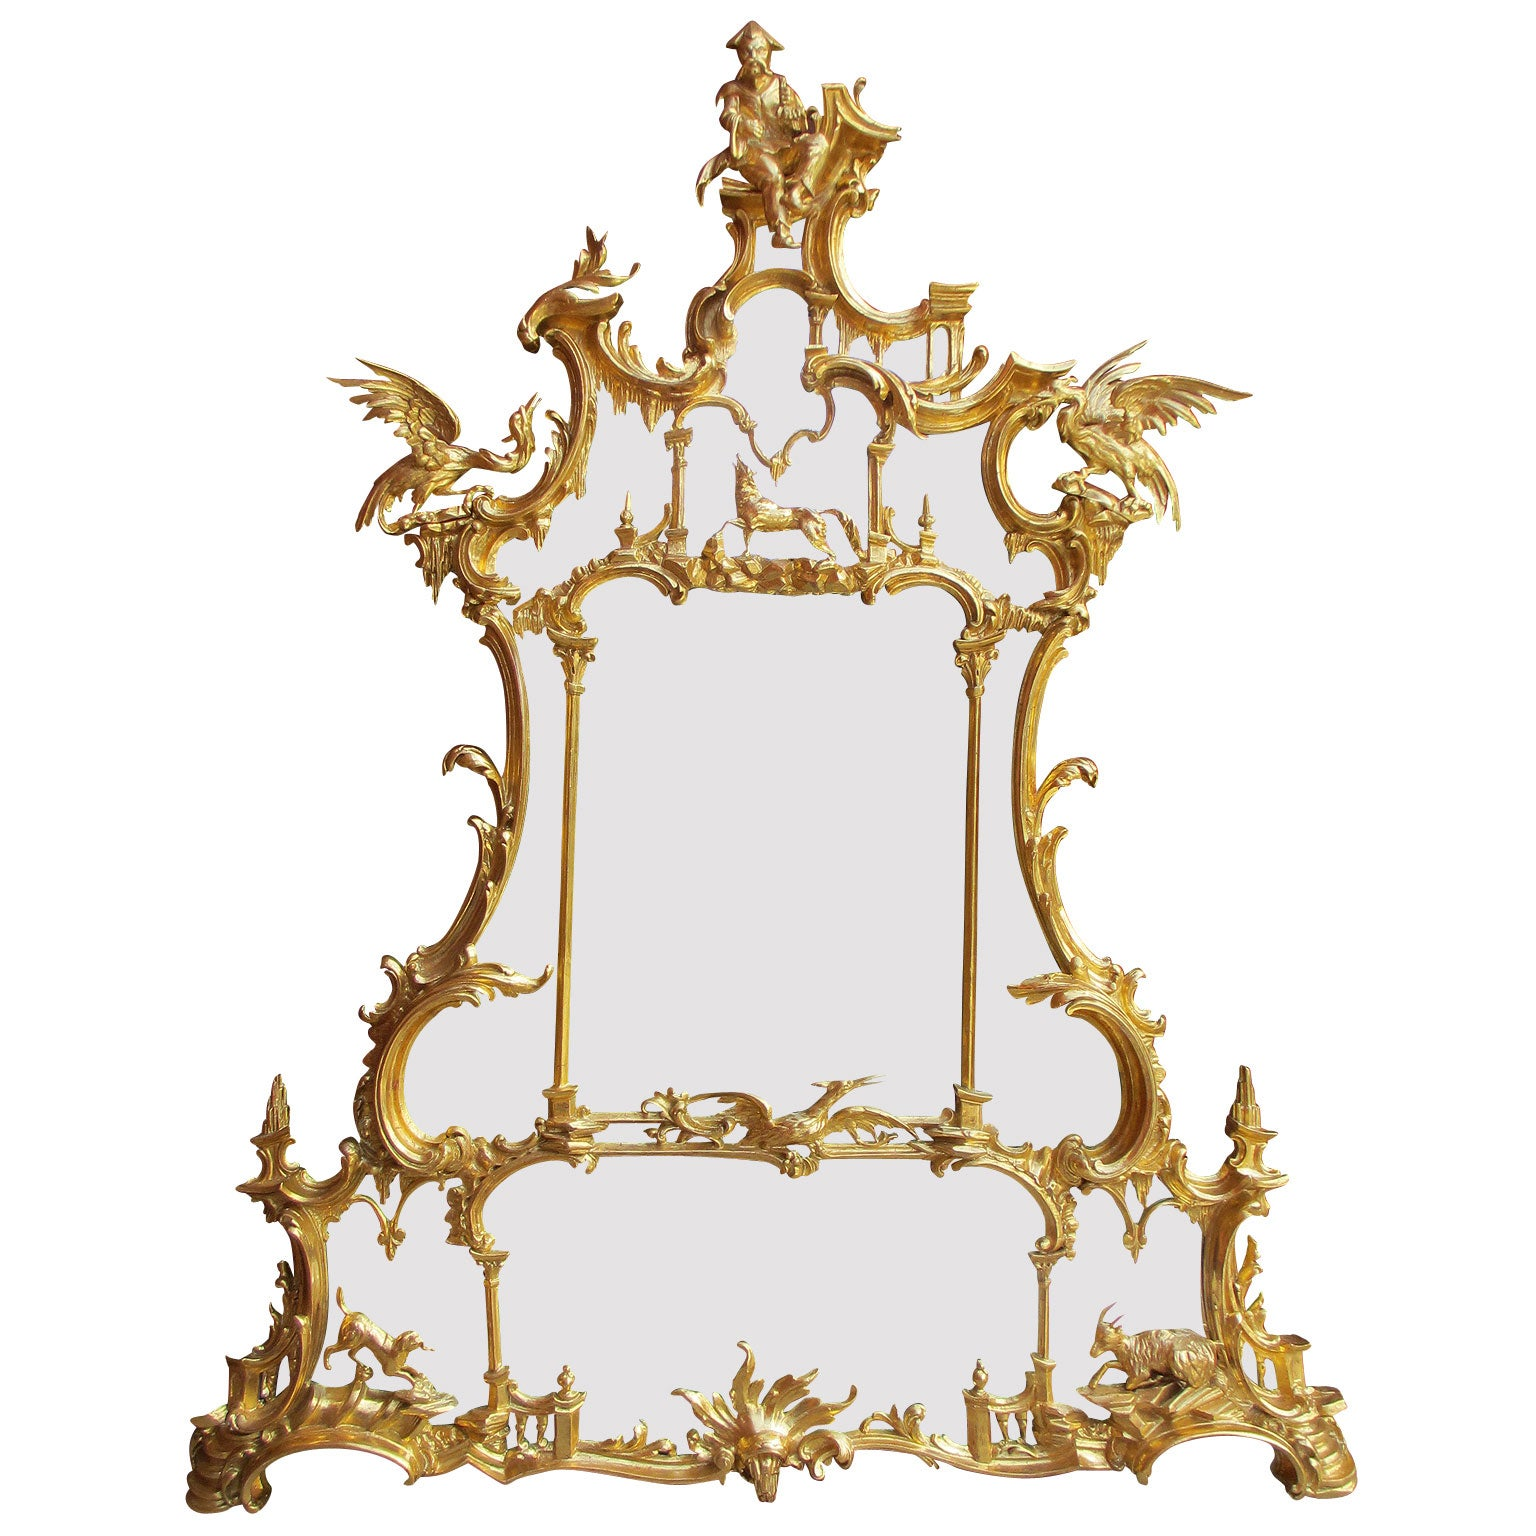 Fine 19th Century Chippendale Style Gilt-Wood Carved Mirror after Thomas Johnson